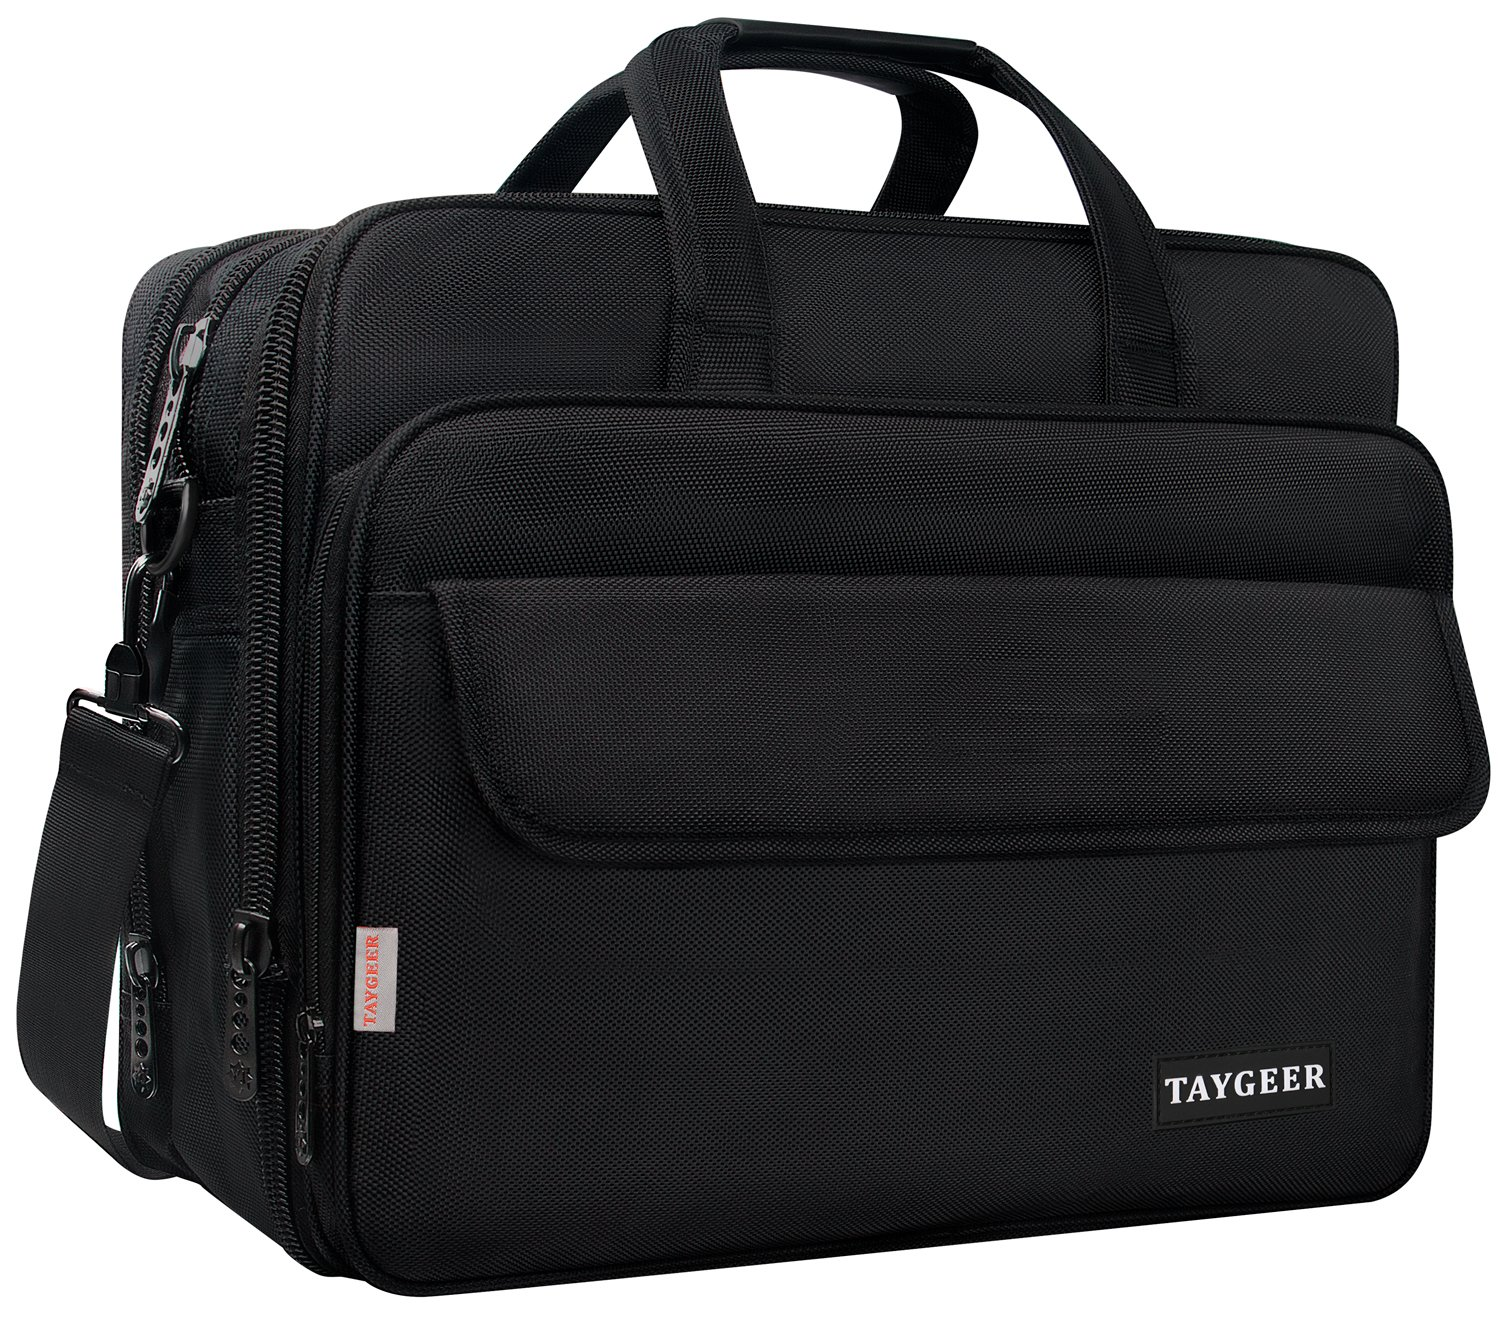 Taygeer 17 Inch Laptop Bag, Expandable Multi-functional Business Briefcase for Men Women, Water Resitant Shoulder Computer Messenger Bag,Carry On Handle Travel Case for 17